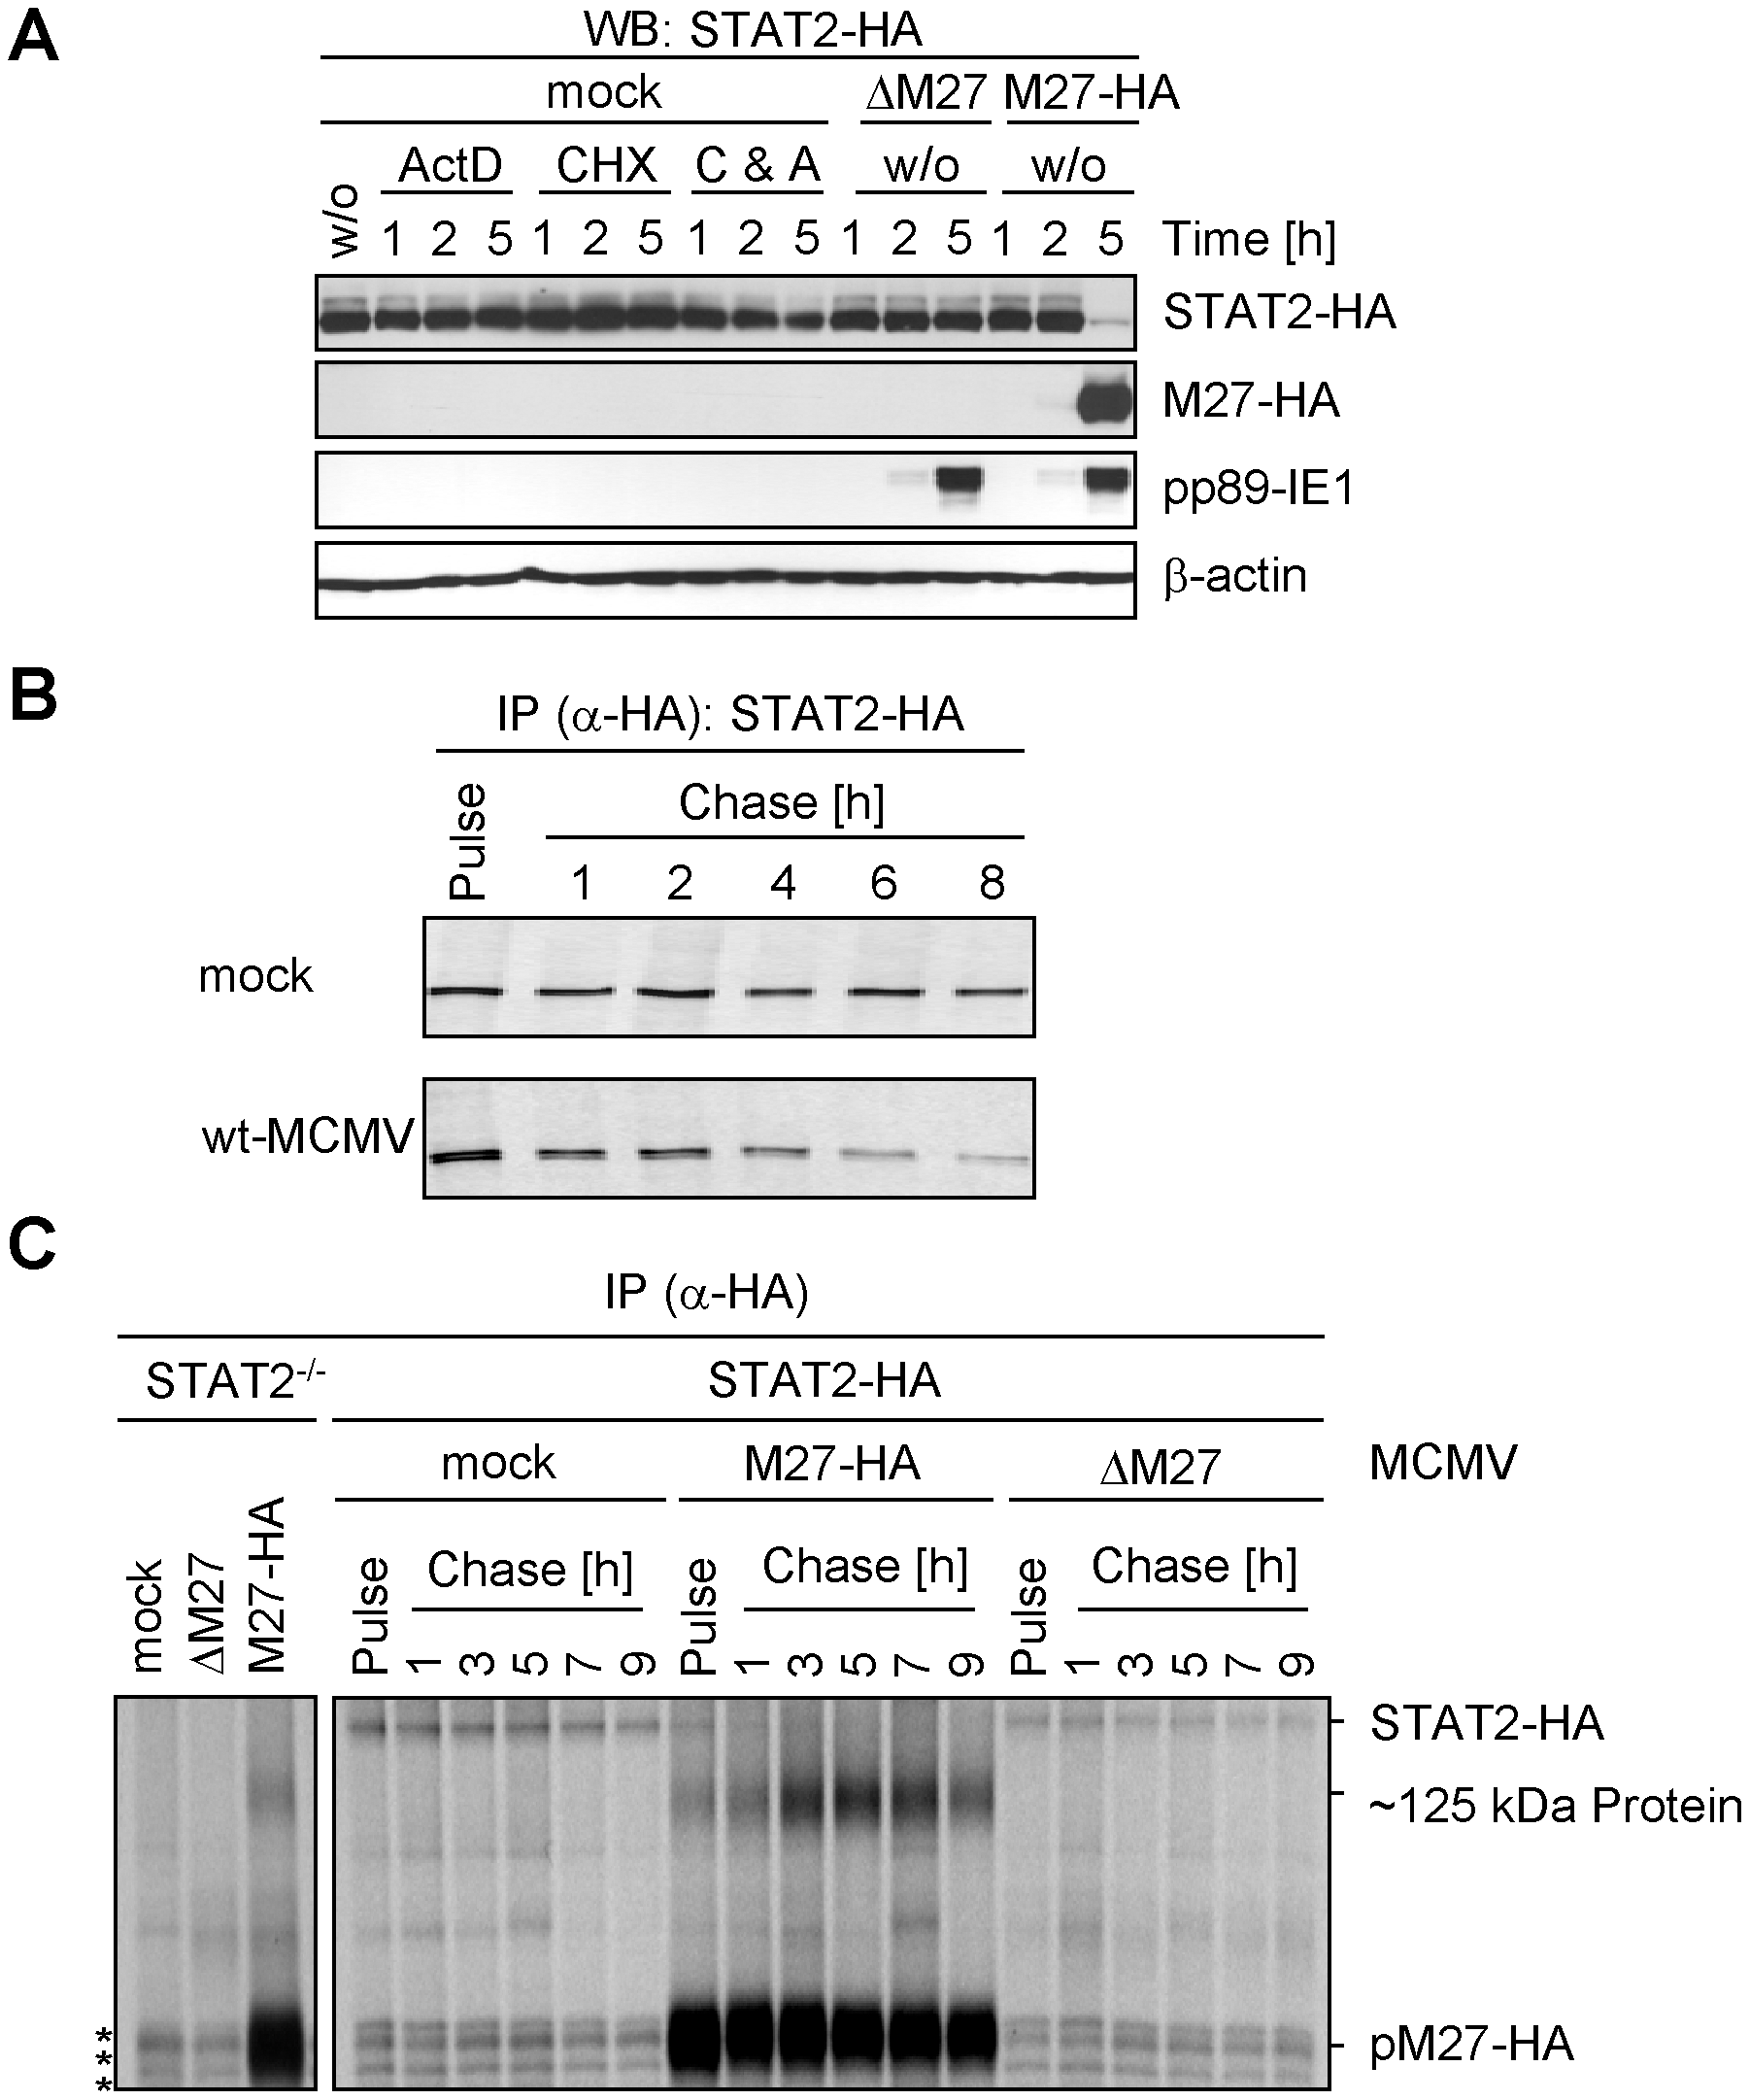 pM27 affects STAT2 protein levels.